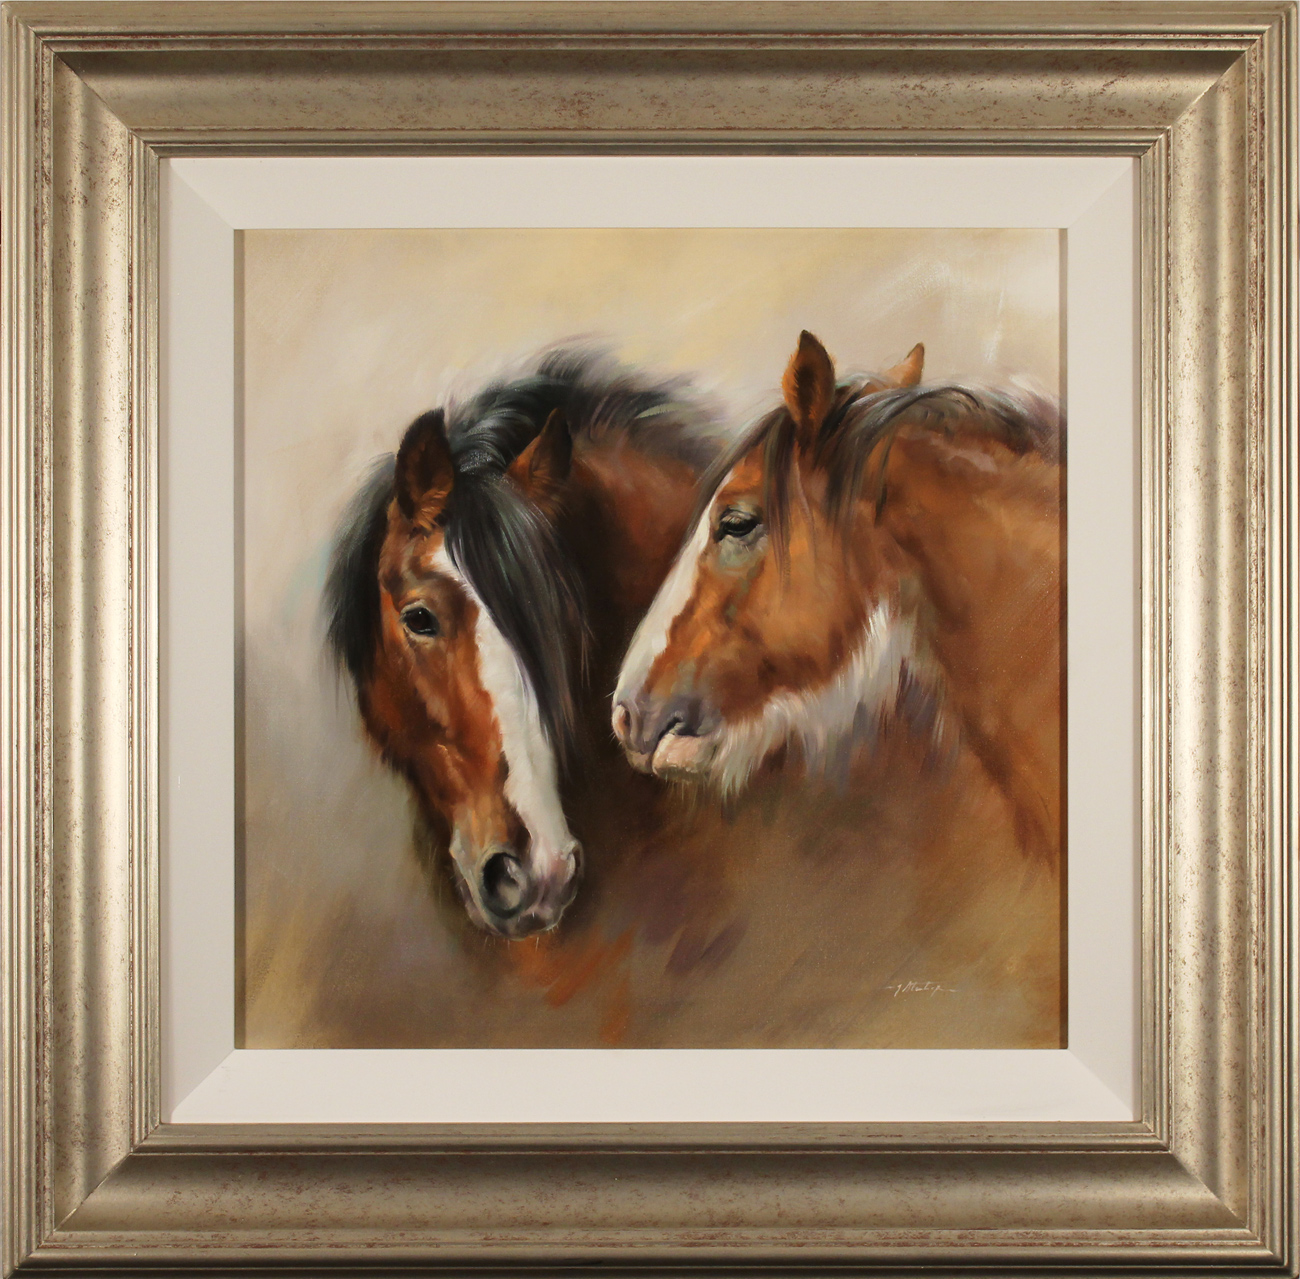 Jacqueline Stanhope, Original oil painting on canvas, Shire Horses, click to enlarge